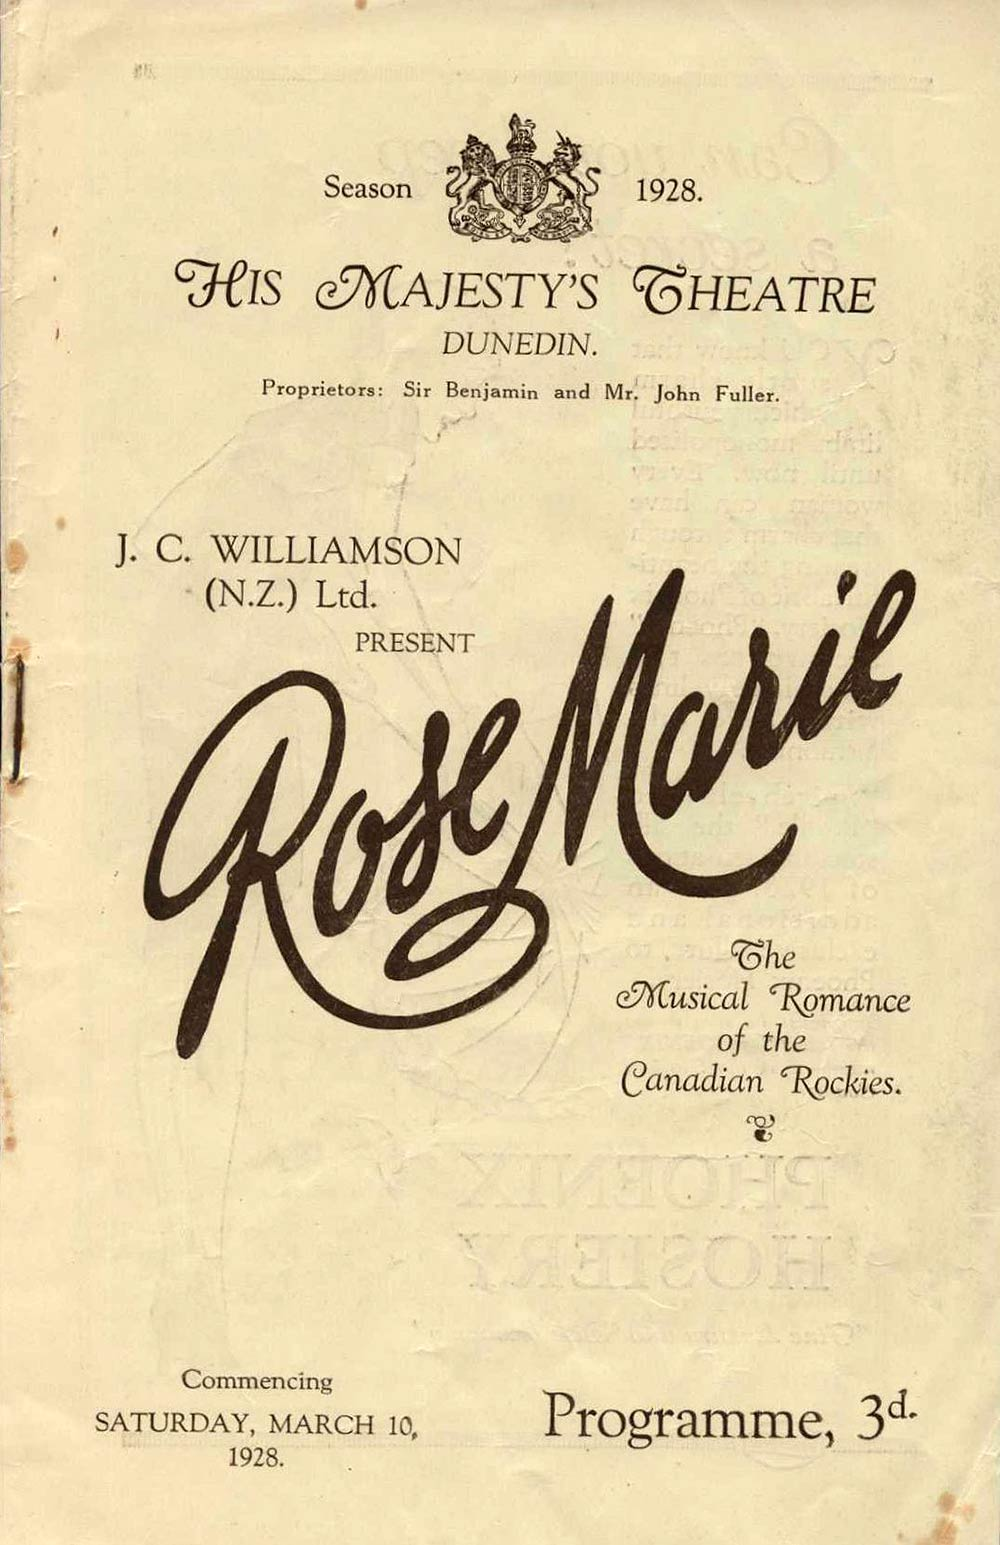 <em>Rose Marie</em>. Book and lyrics by Otto Harbach and Oscar Hammerstein II; music by Rudolph Friml and Herbert Stothart. (J.C. Williamson Ltd.). His Majesty's Theatre, Dunedin, Mar. 10, 1928.